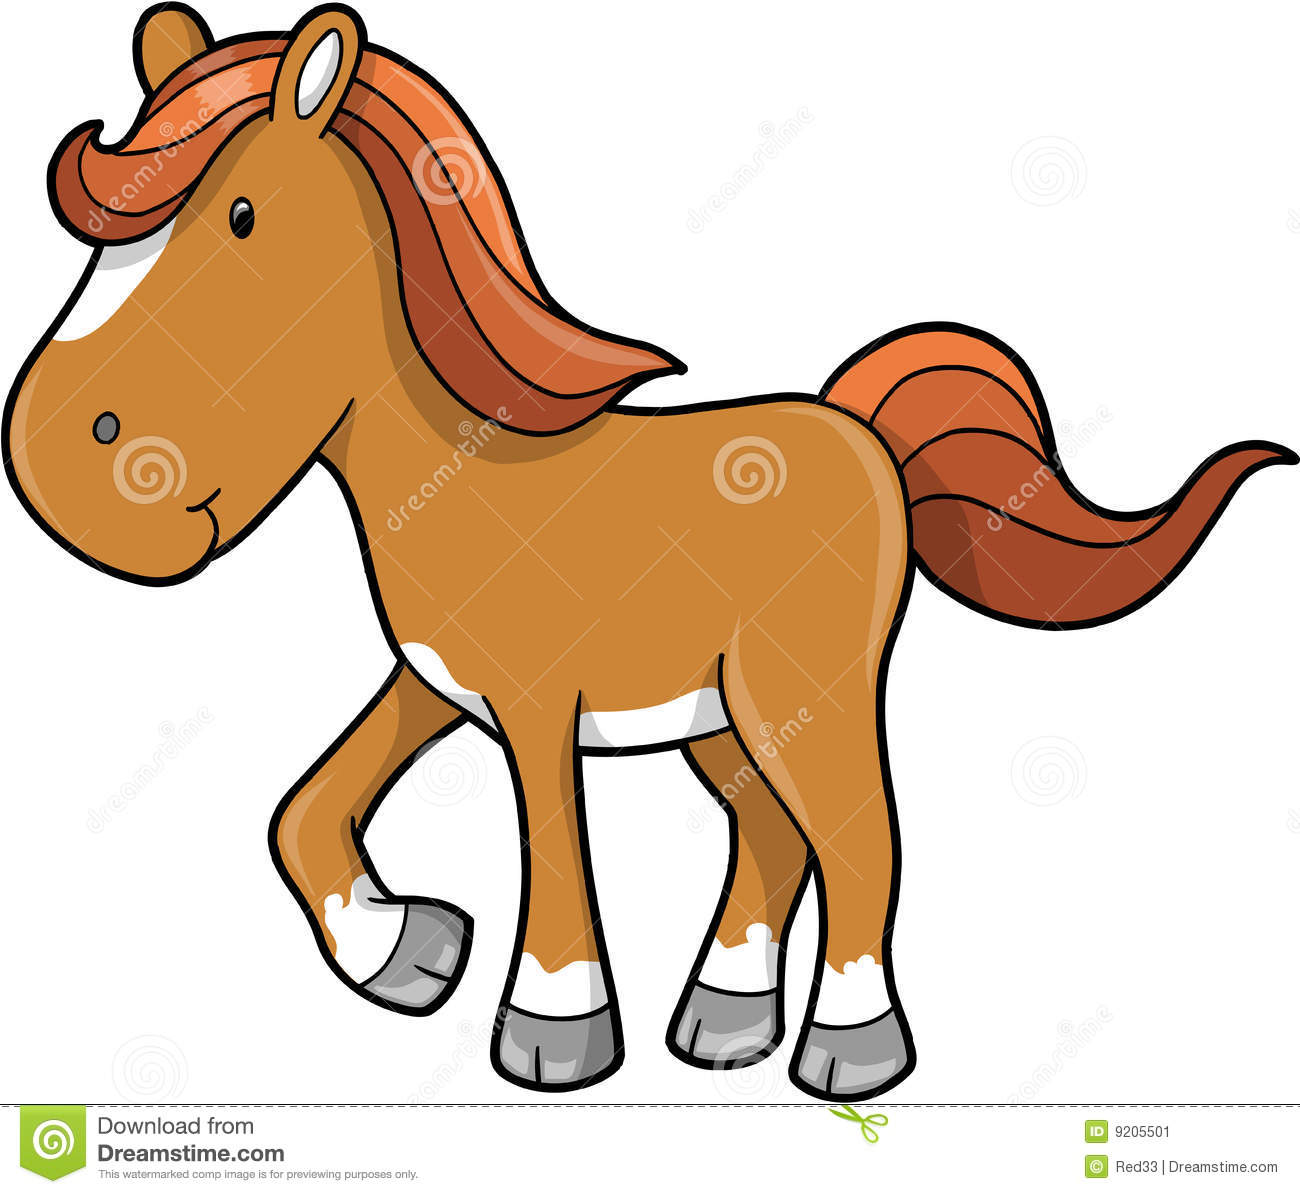 Cute Horse Pony Vector Stock Illustrations 15 456 Cute Horse Pony Vector Stock Illustrations Vectors Clipart Dreamstime